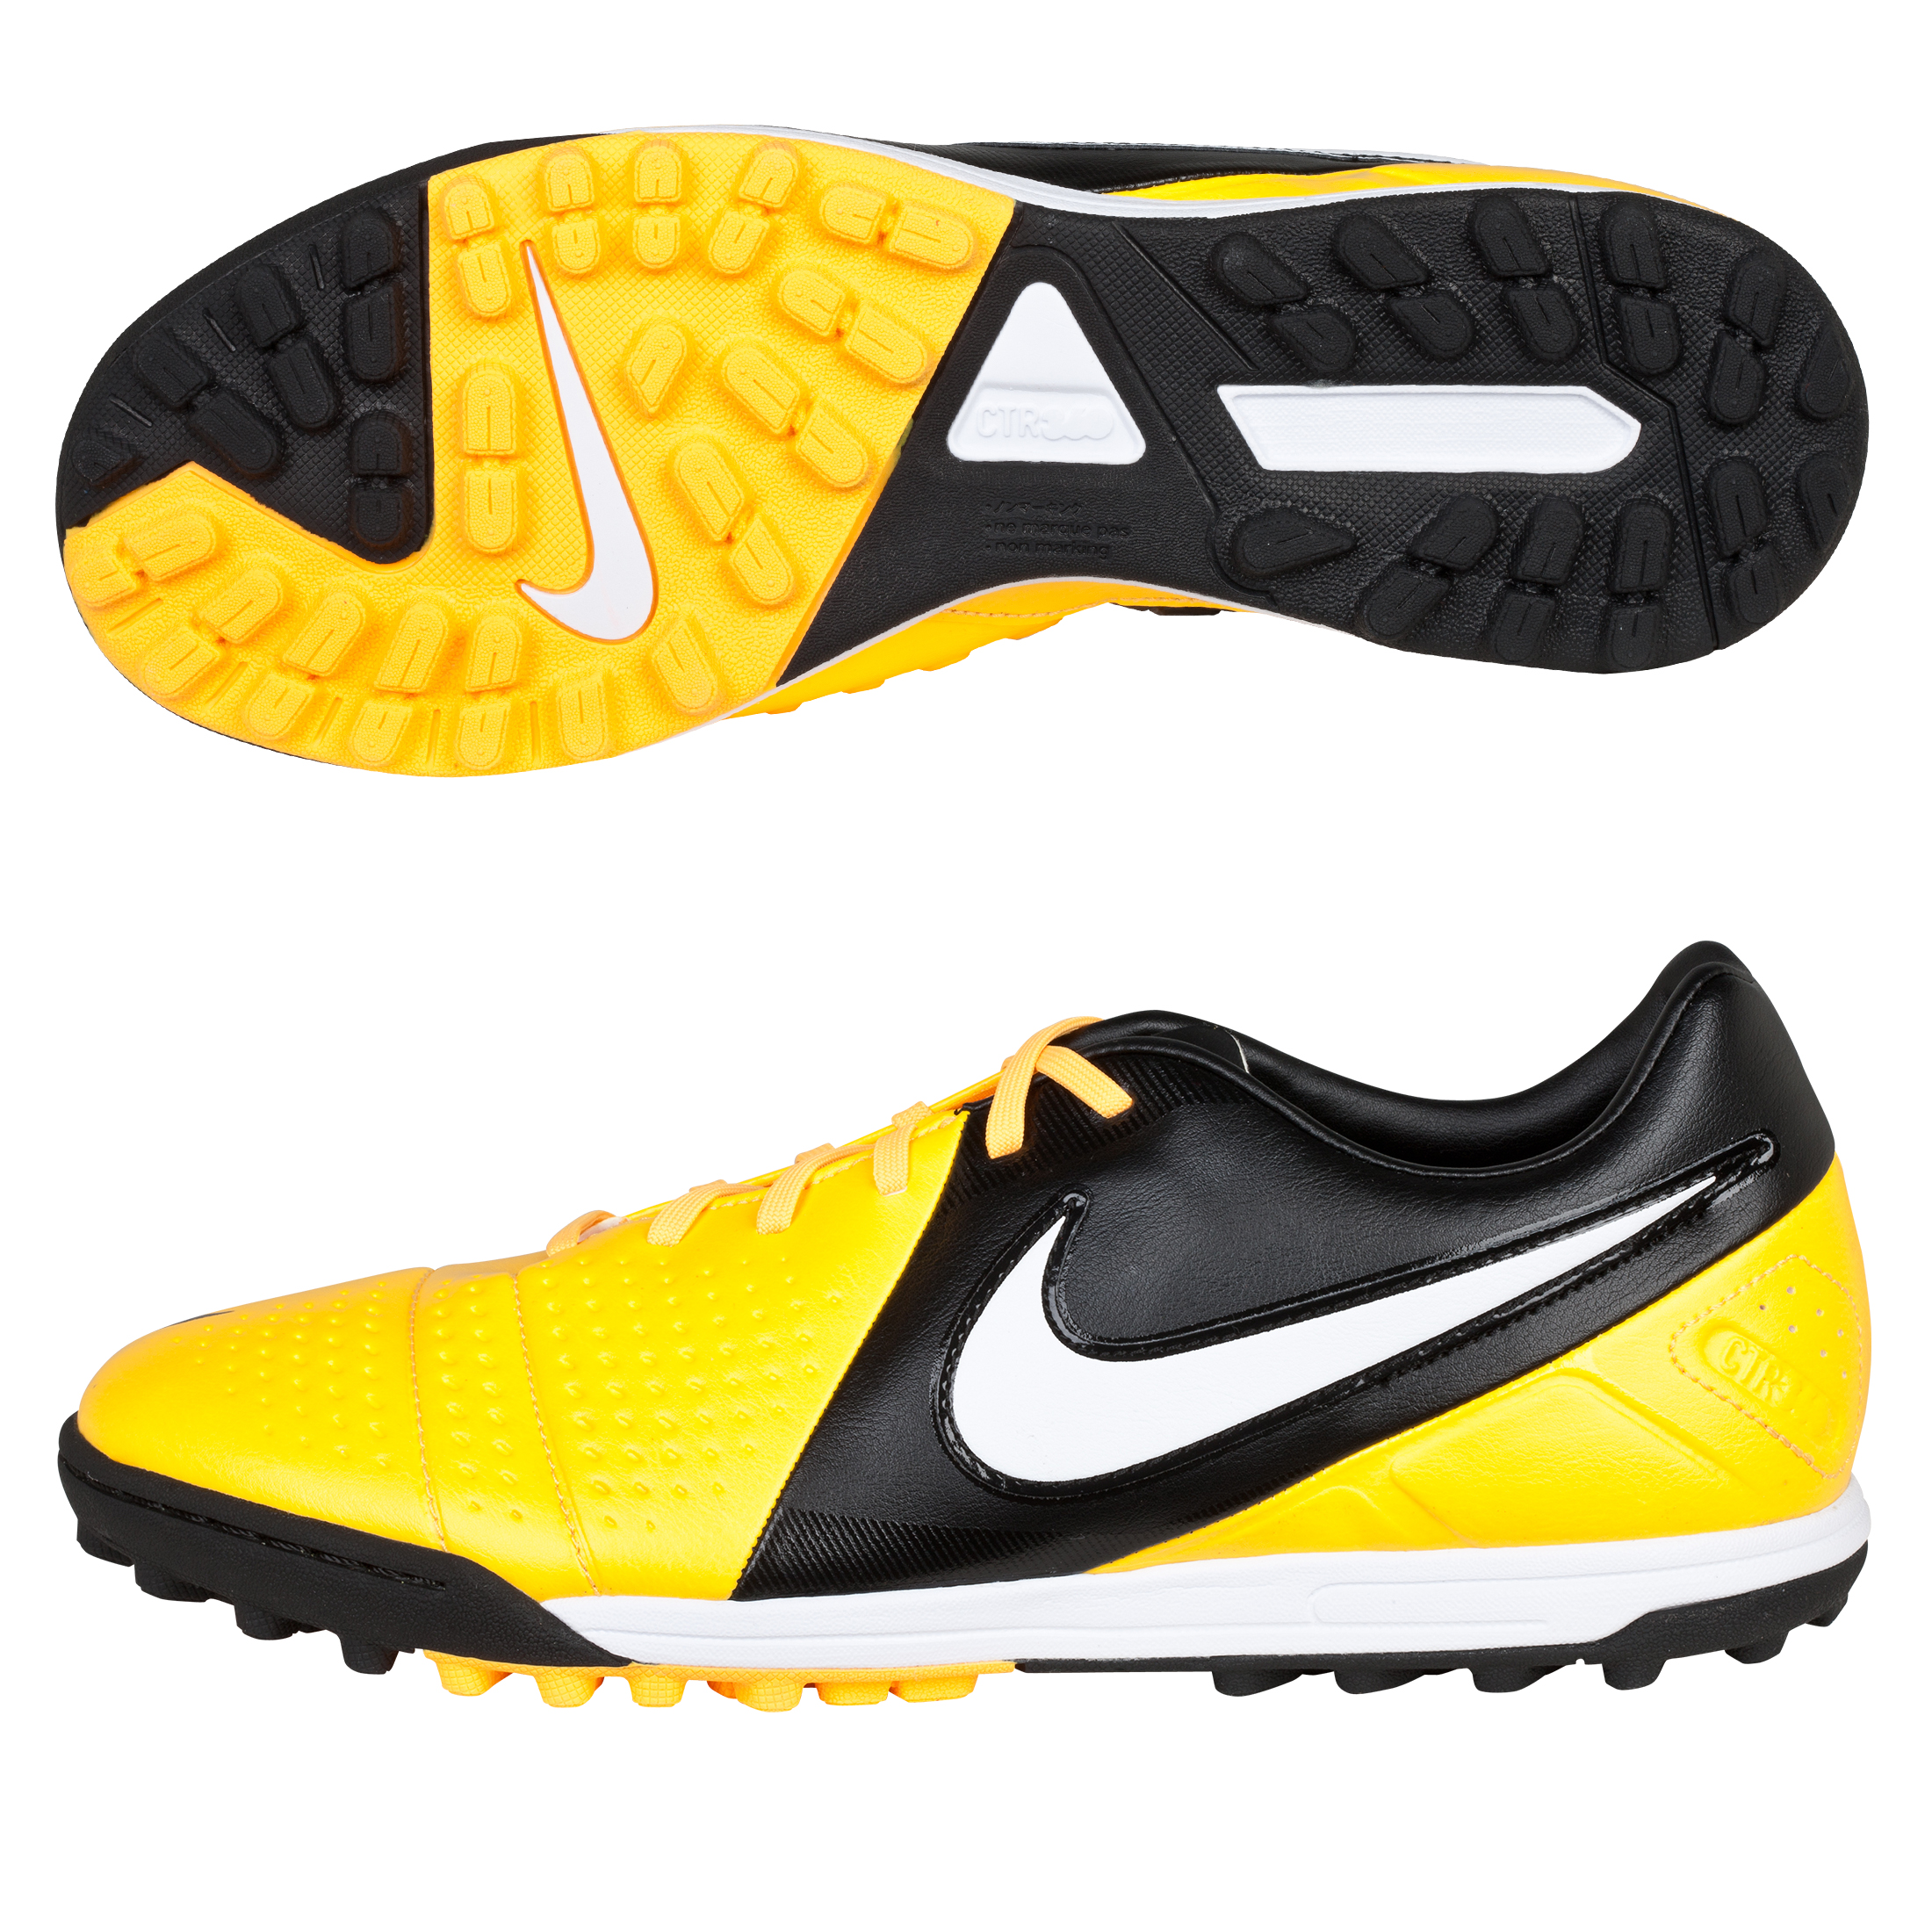 Nike CTR360 Libretto III Astroturf Trainers - Citrus/White/Black